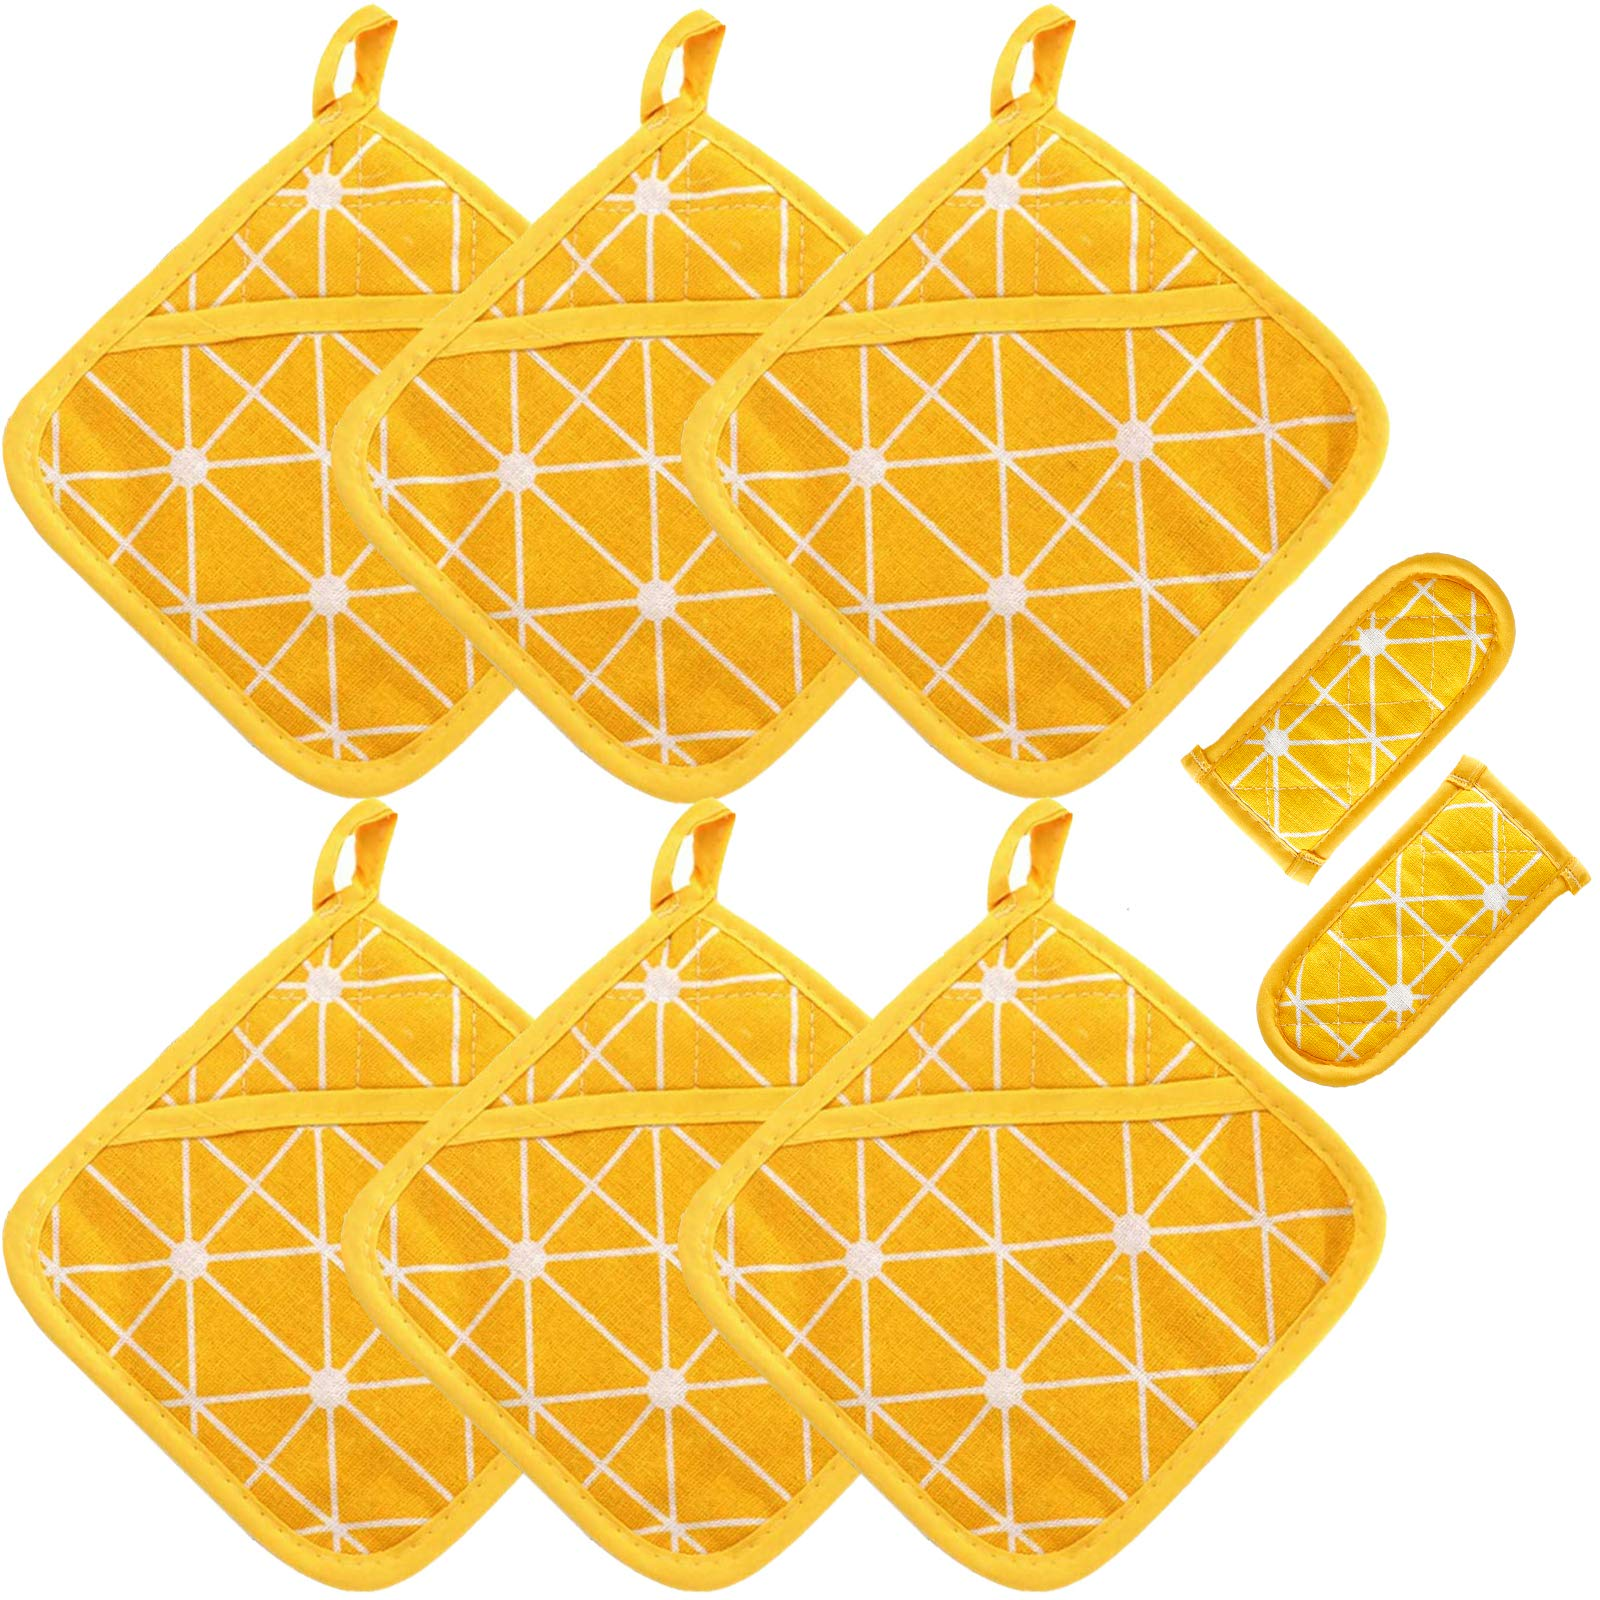 Win Change Heat Resistant Potholders Hot Pads-6 Kitchen Pot Holders Set with 2 Pan Hot Handle Holders Trivet for Cooking and Baking,with Recycled Cotton Infill Terrycloth Lining(Yellow,8 Piece)